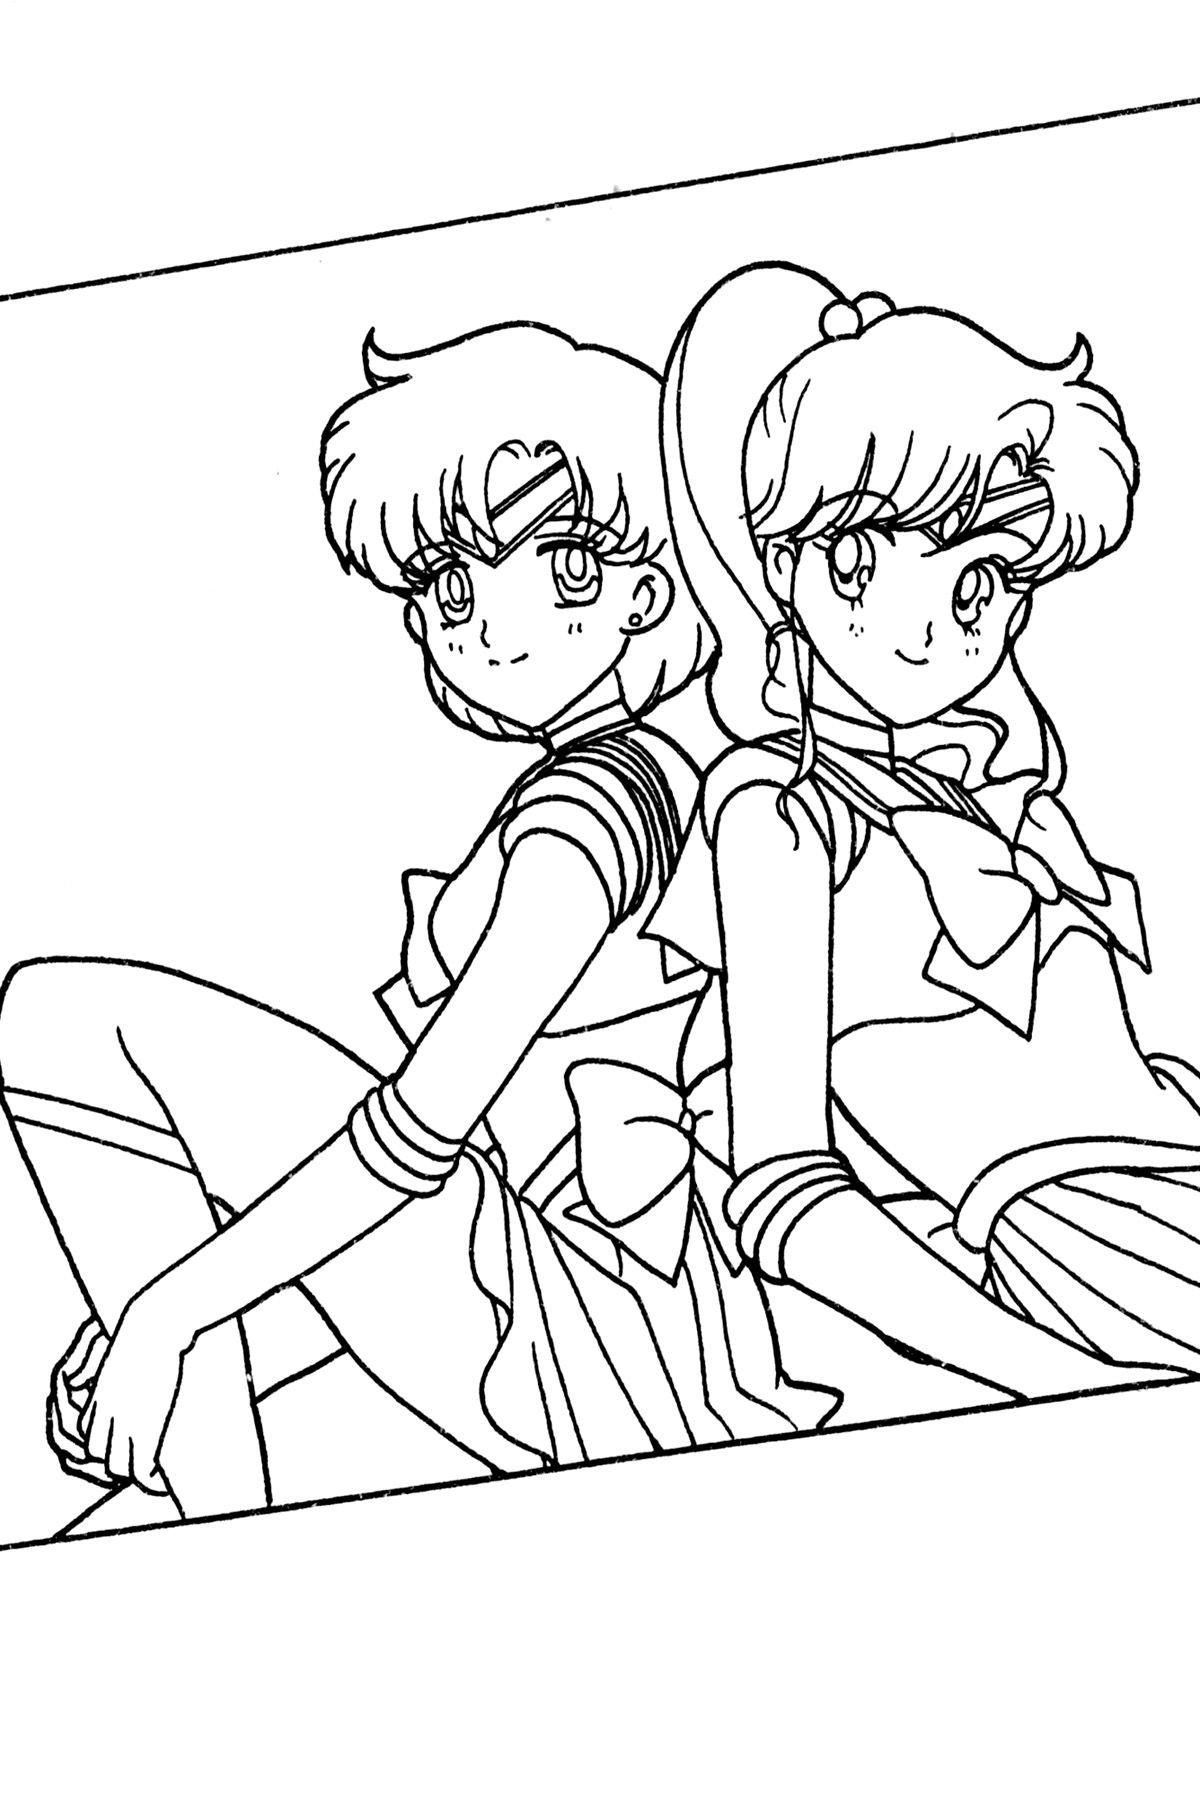 duos113.jpg (1200×1795) | Coloring pages | Pinterest